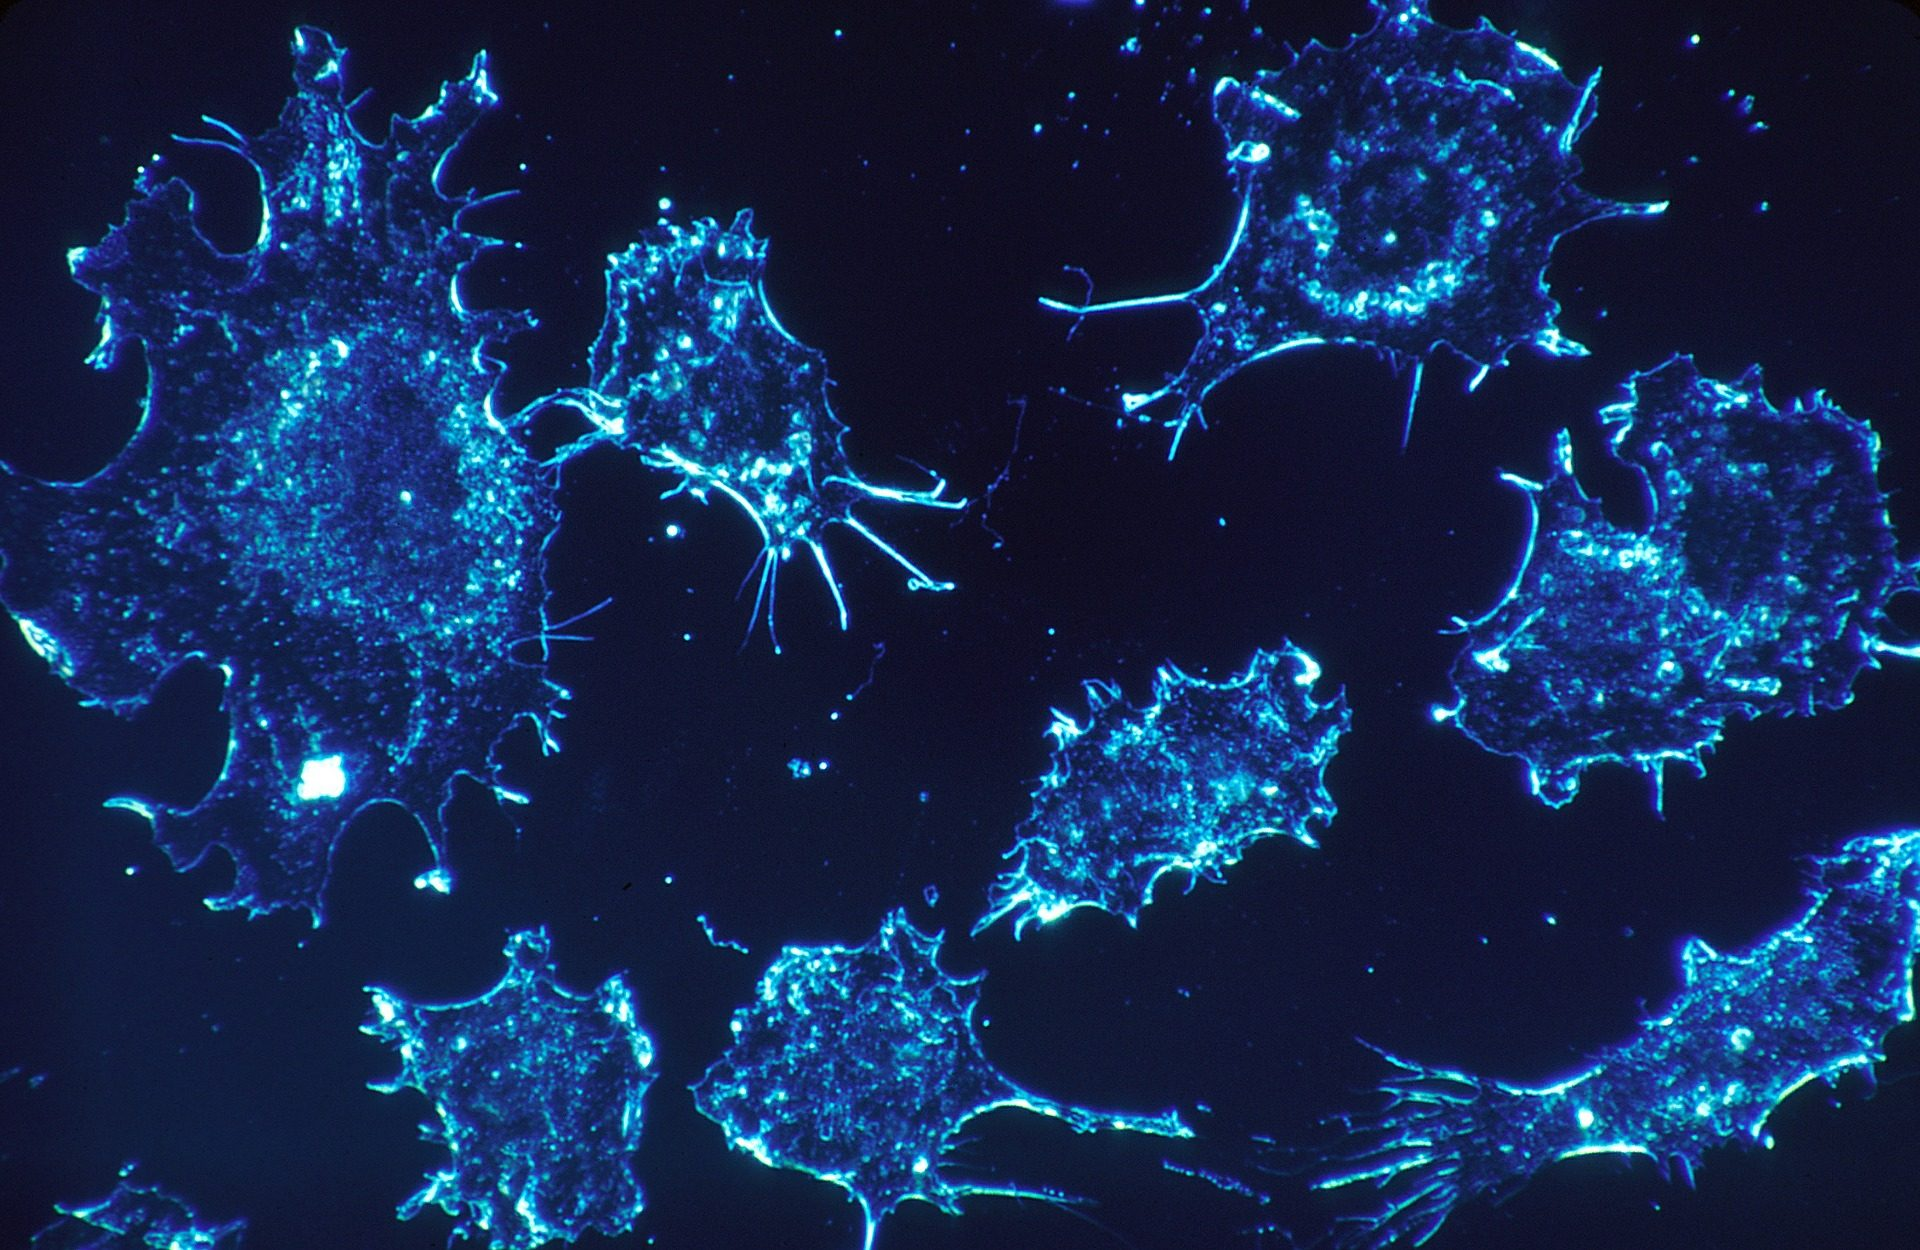 Finding Hidden Cancer Cells: New Study Mobilizes the Immune System to Find Undetectable Cancer Cells